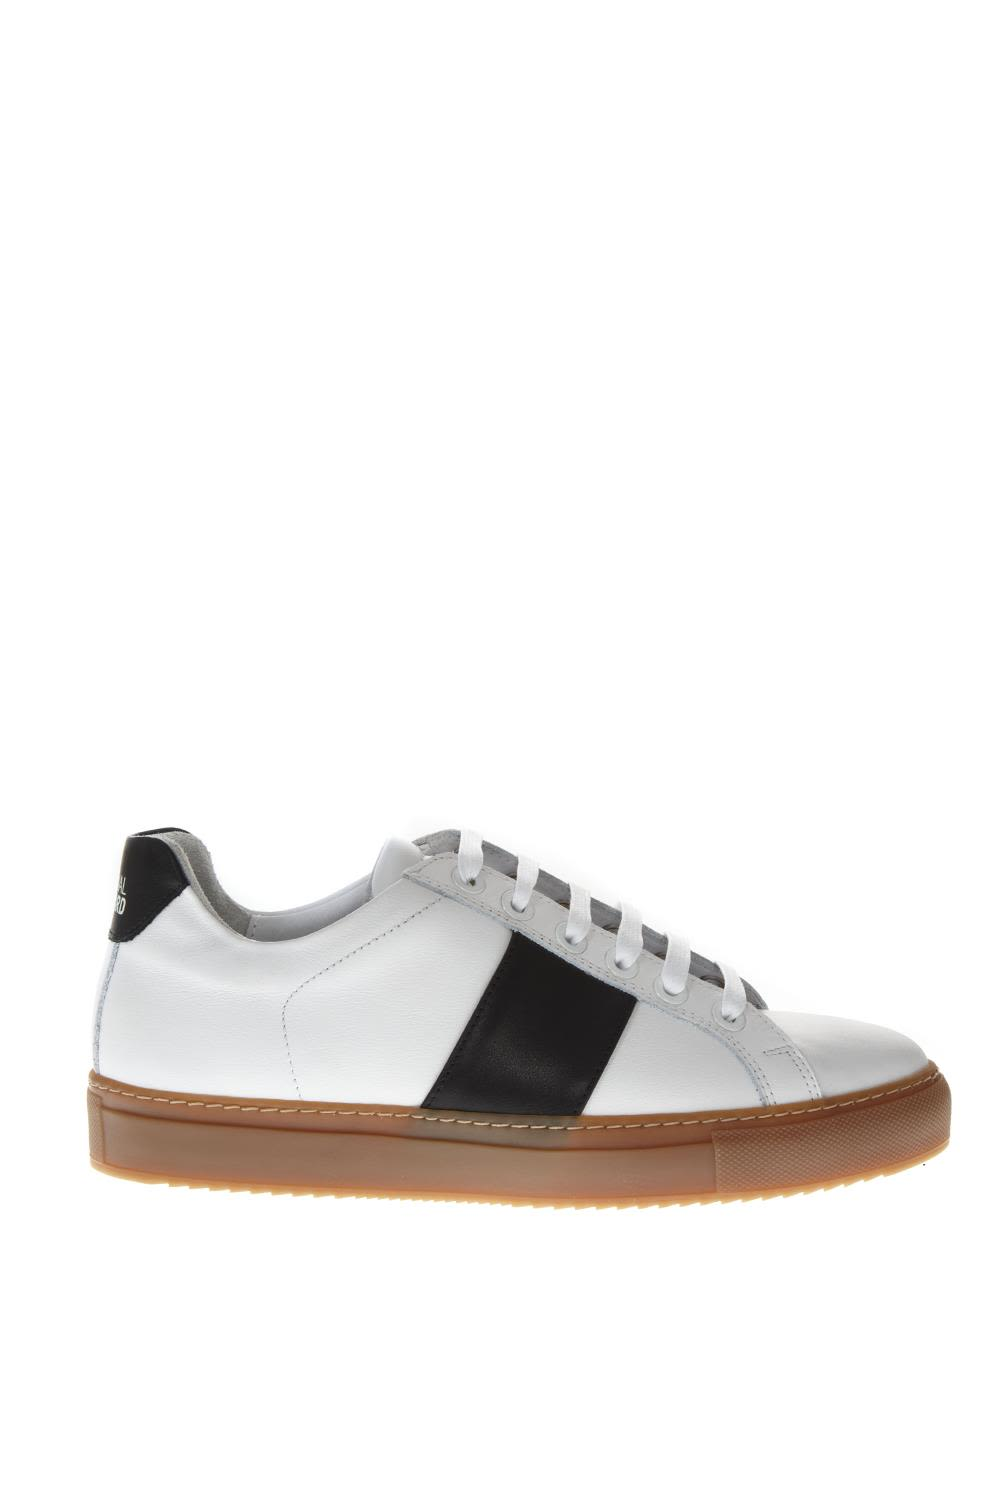 NATIONAL STANDARD White Leather Honey Sole Blue Bands Sneakers